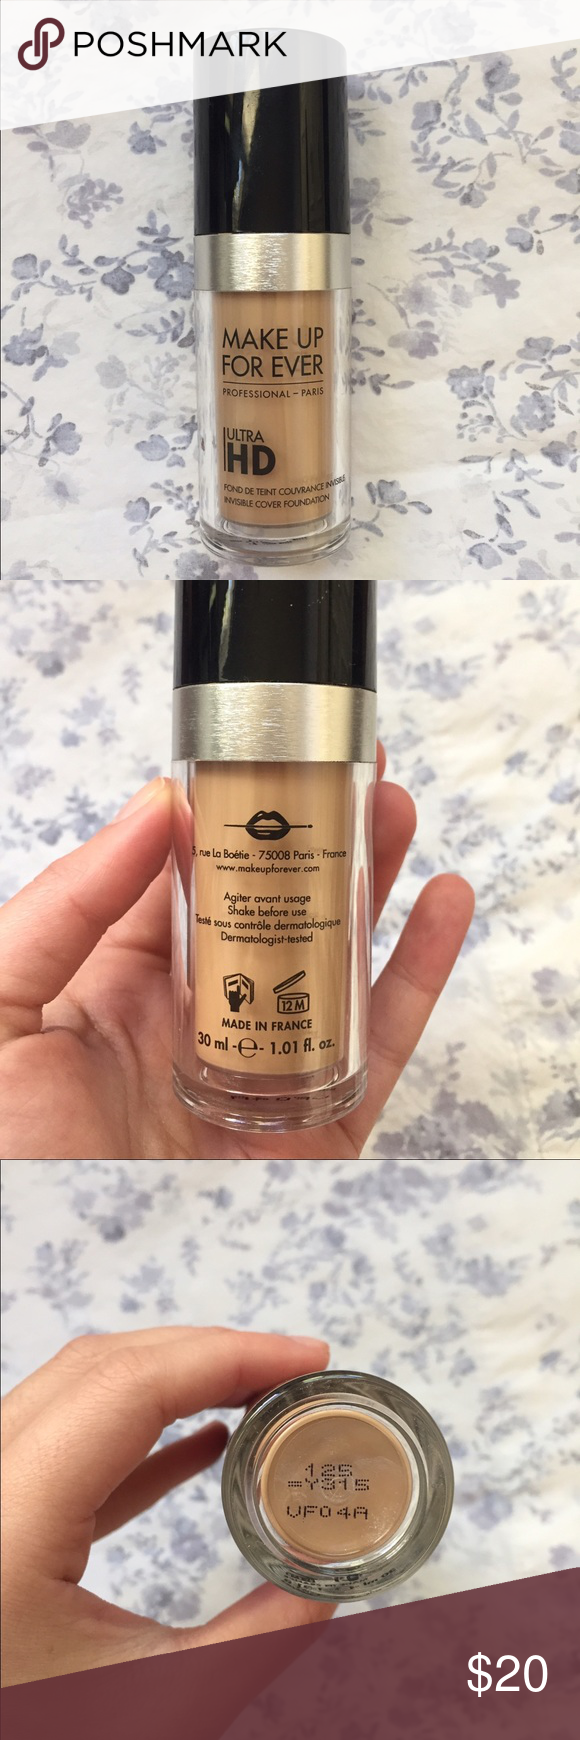 Makeup Forever HD foundation 125 sand shade 125 sand! Used